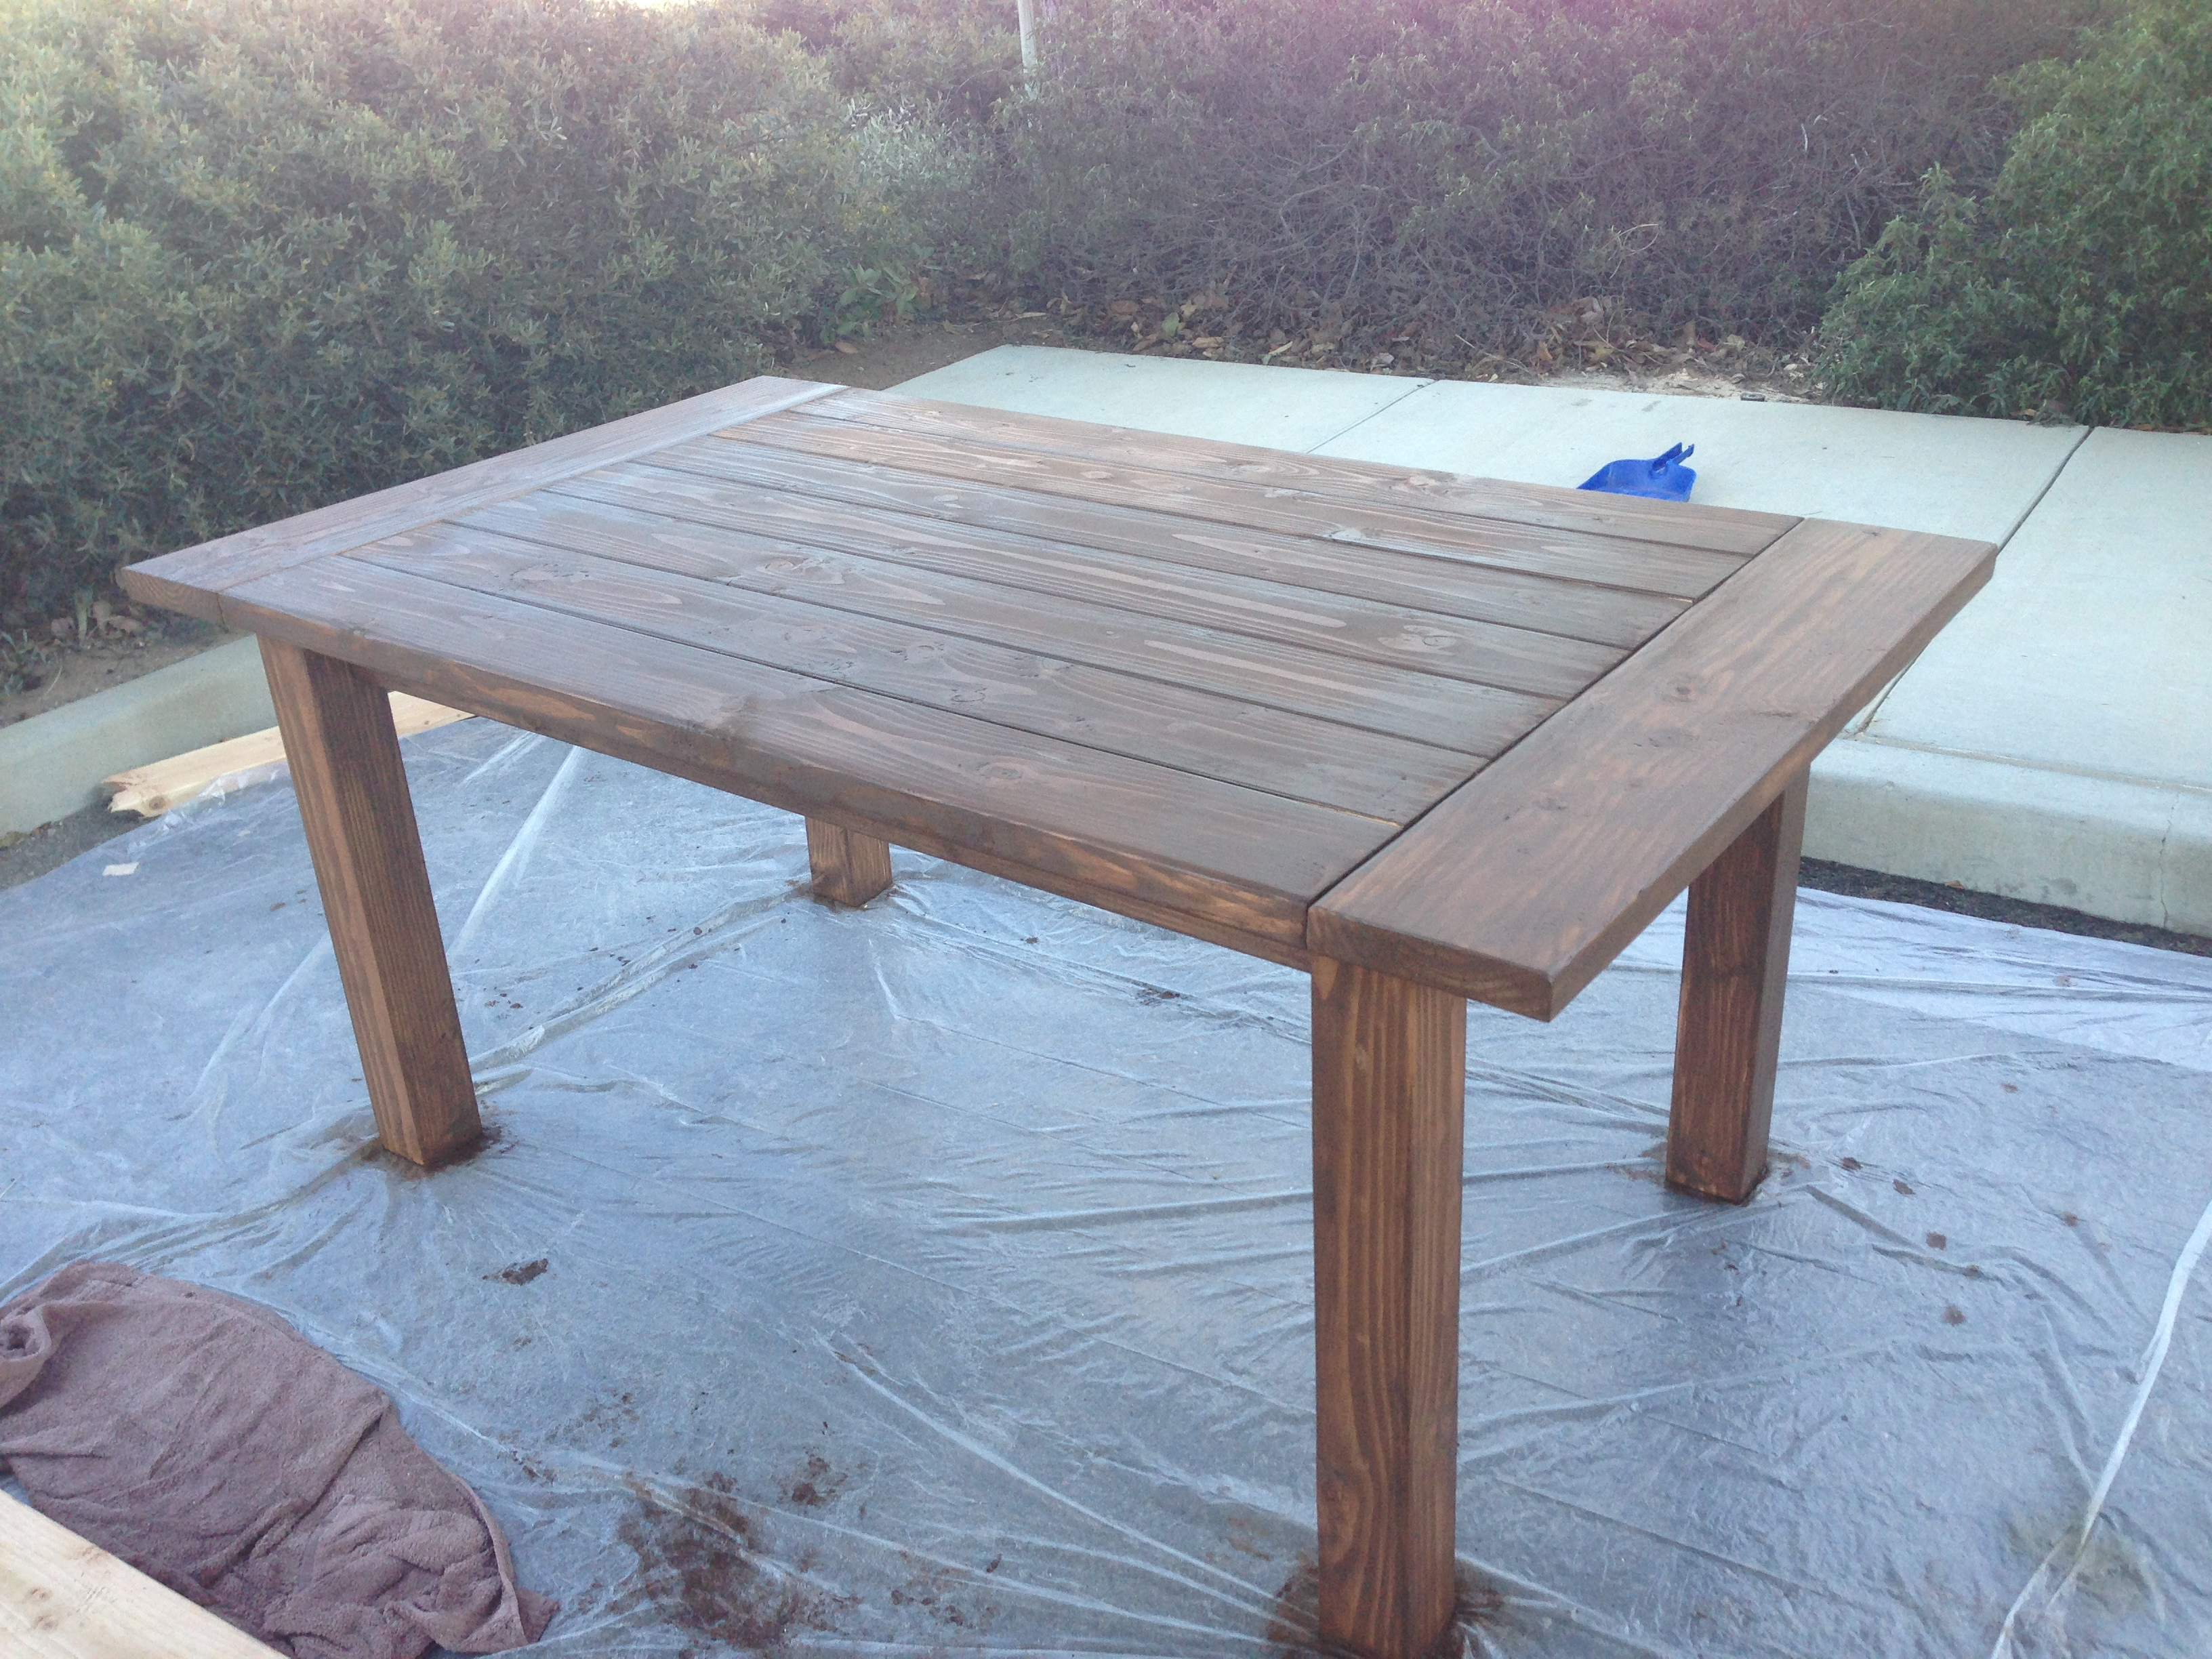 Ana White | Farmhouse Table - No stretcher - DIY Projects